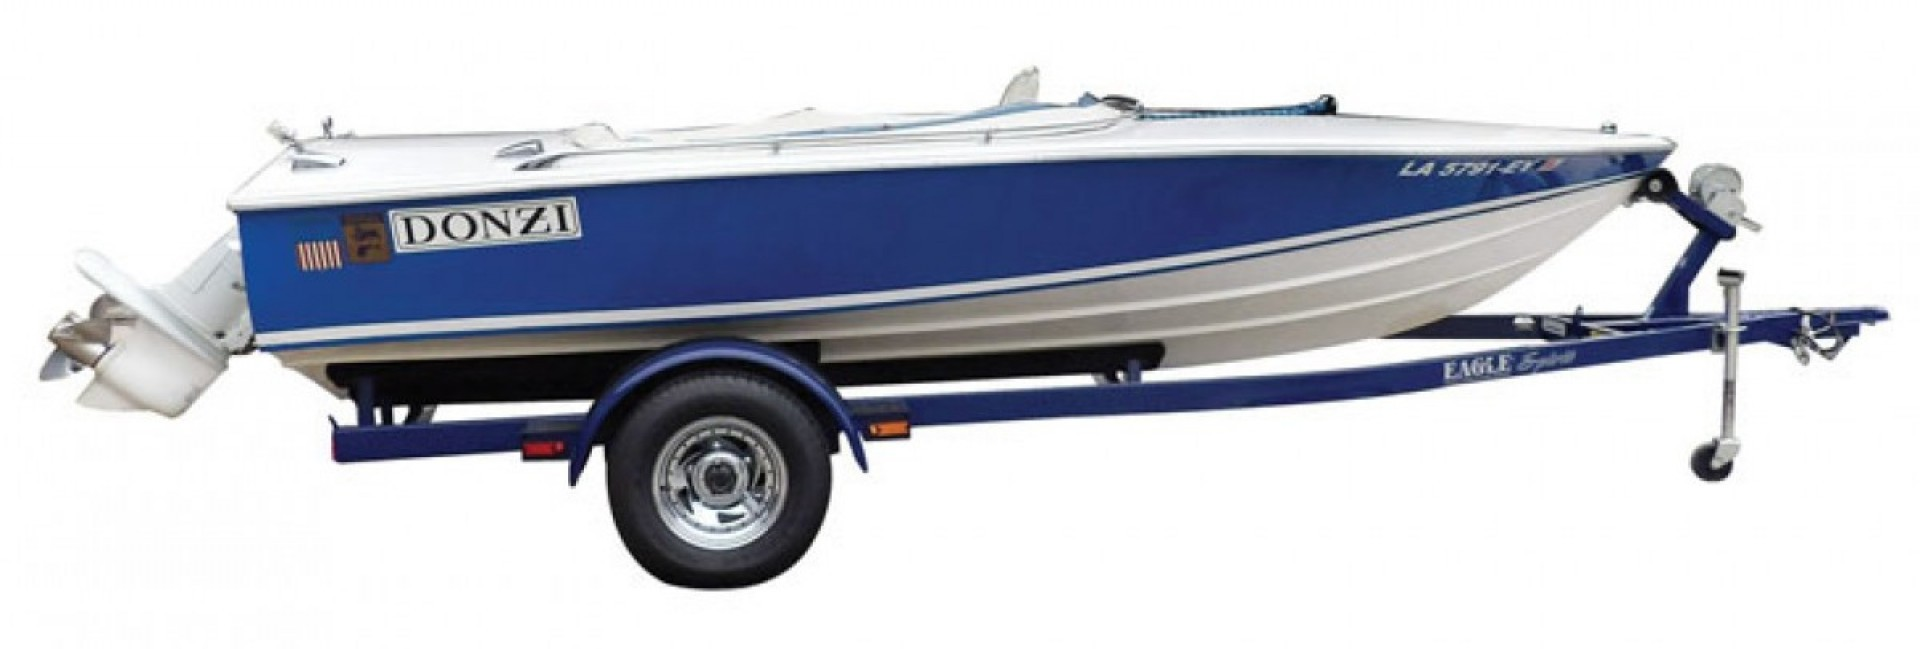 Rv75 1975 Donzi Sweet 16 Restored Classic Runabout With